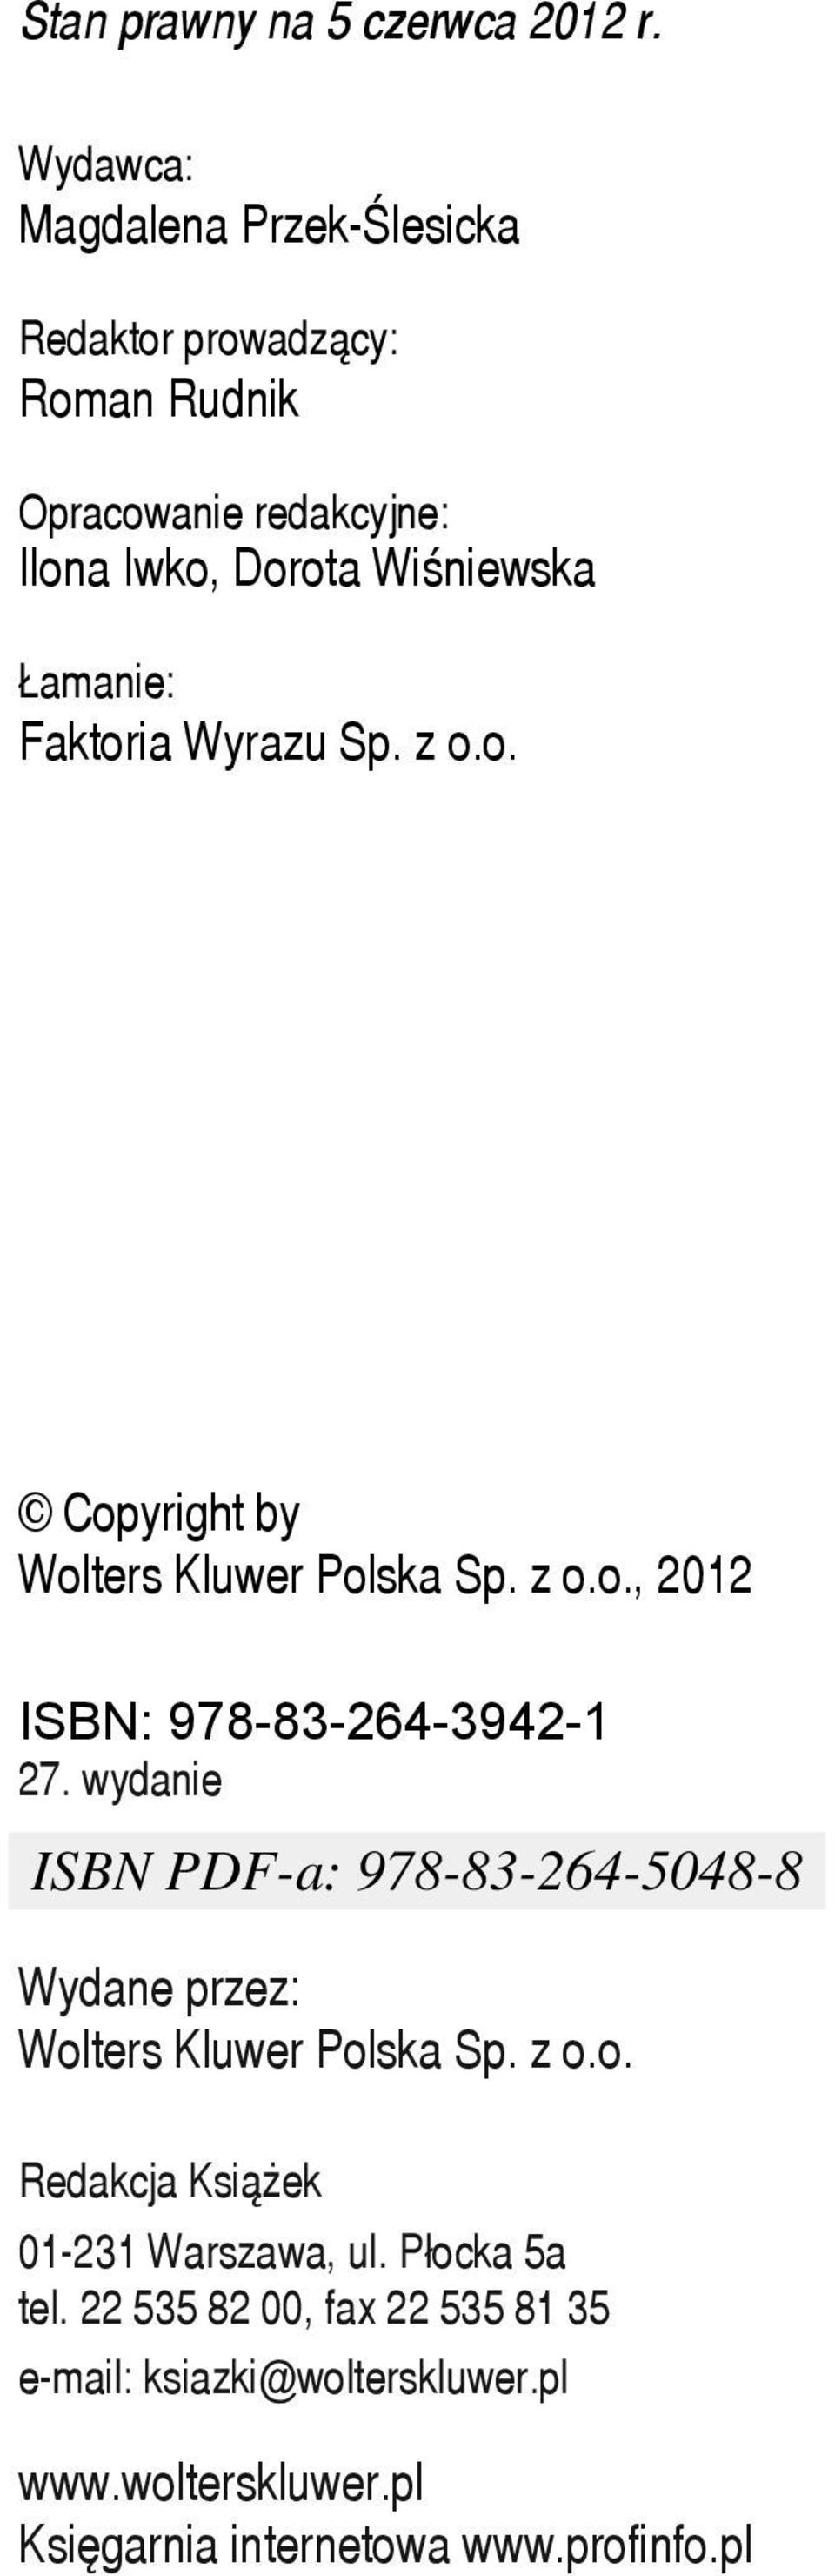 Łamanie: Faktoria Wyrazu Sp. z o.o. Copyright by Wolters Kluwer Polska Sp. z o.o., 2012 ISBN: 978-83-264-3942-1 27.